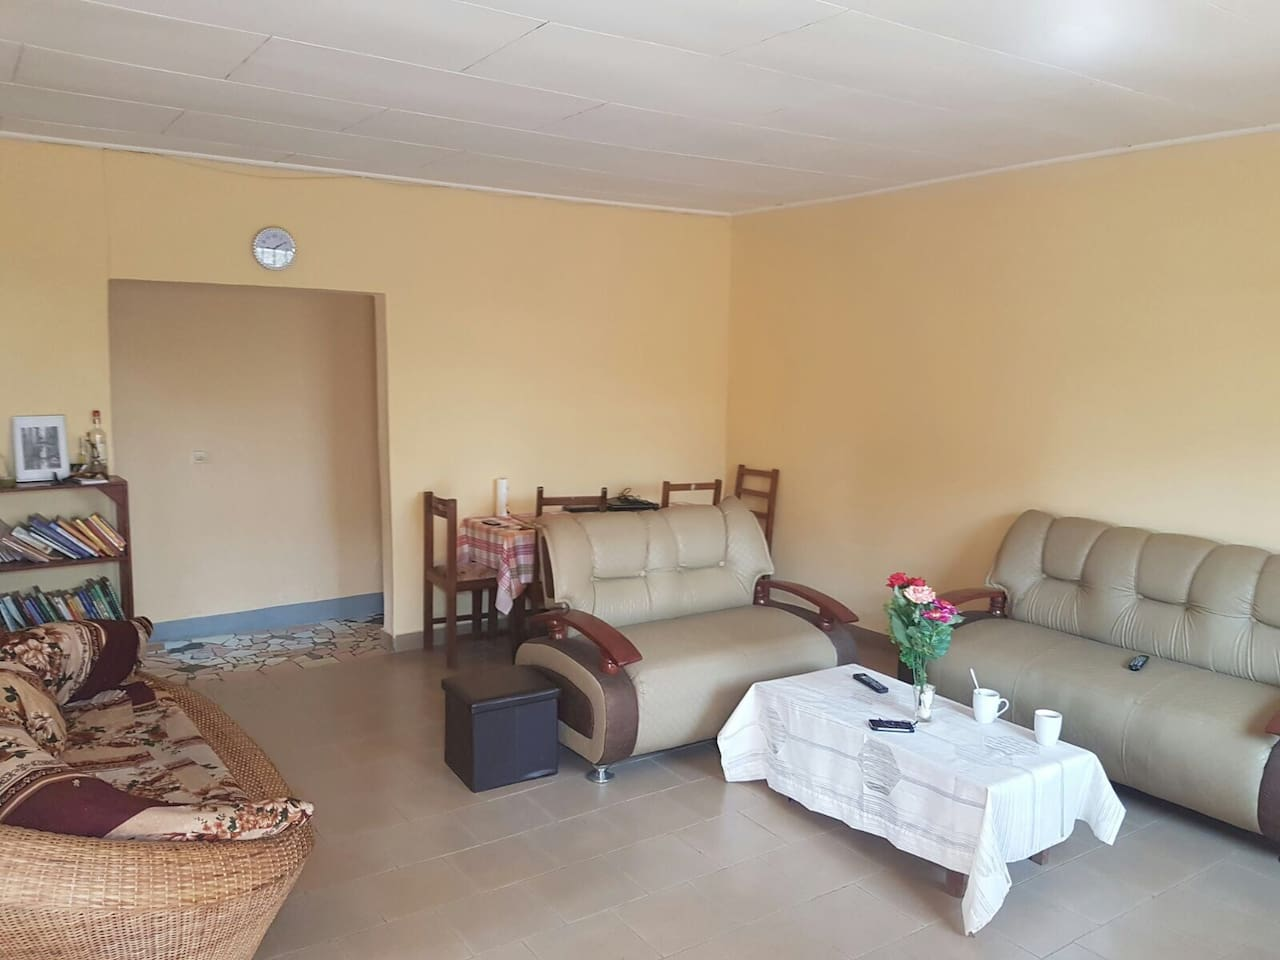 Appartement Meubl Furnished House Ngousso Houses For Rent In  # Meuble Tv Yaounde